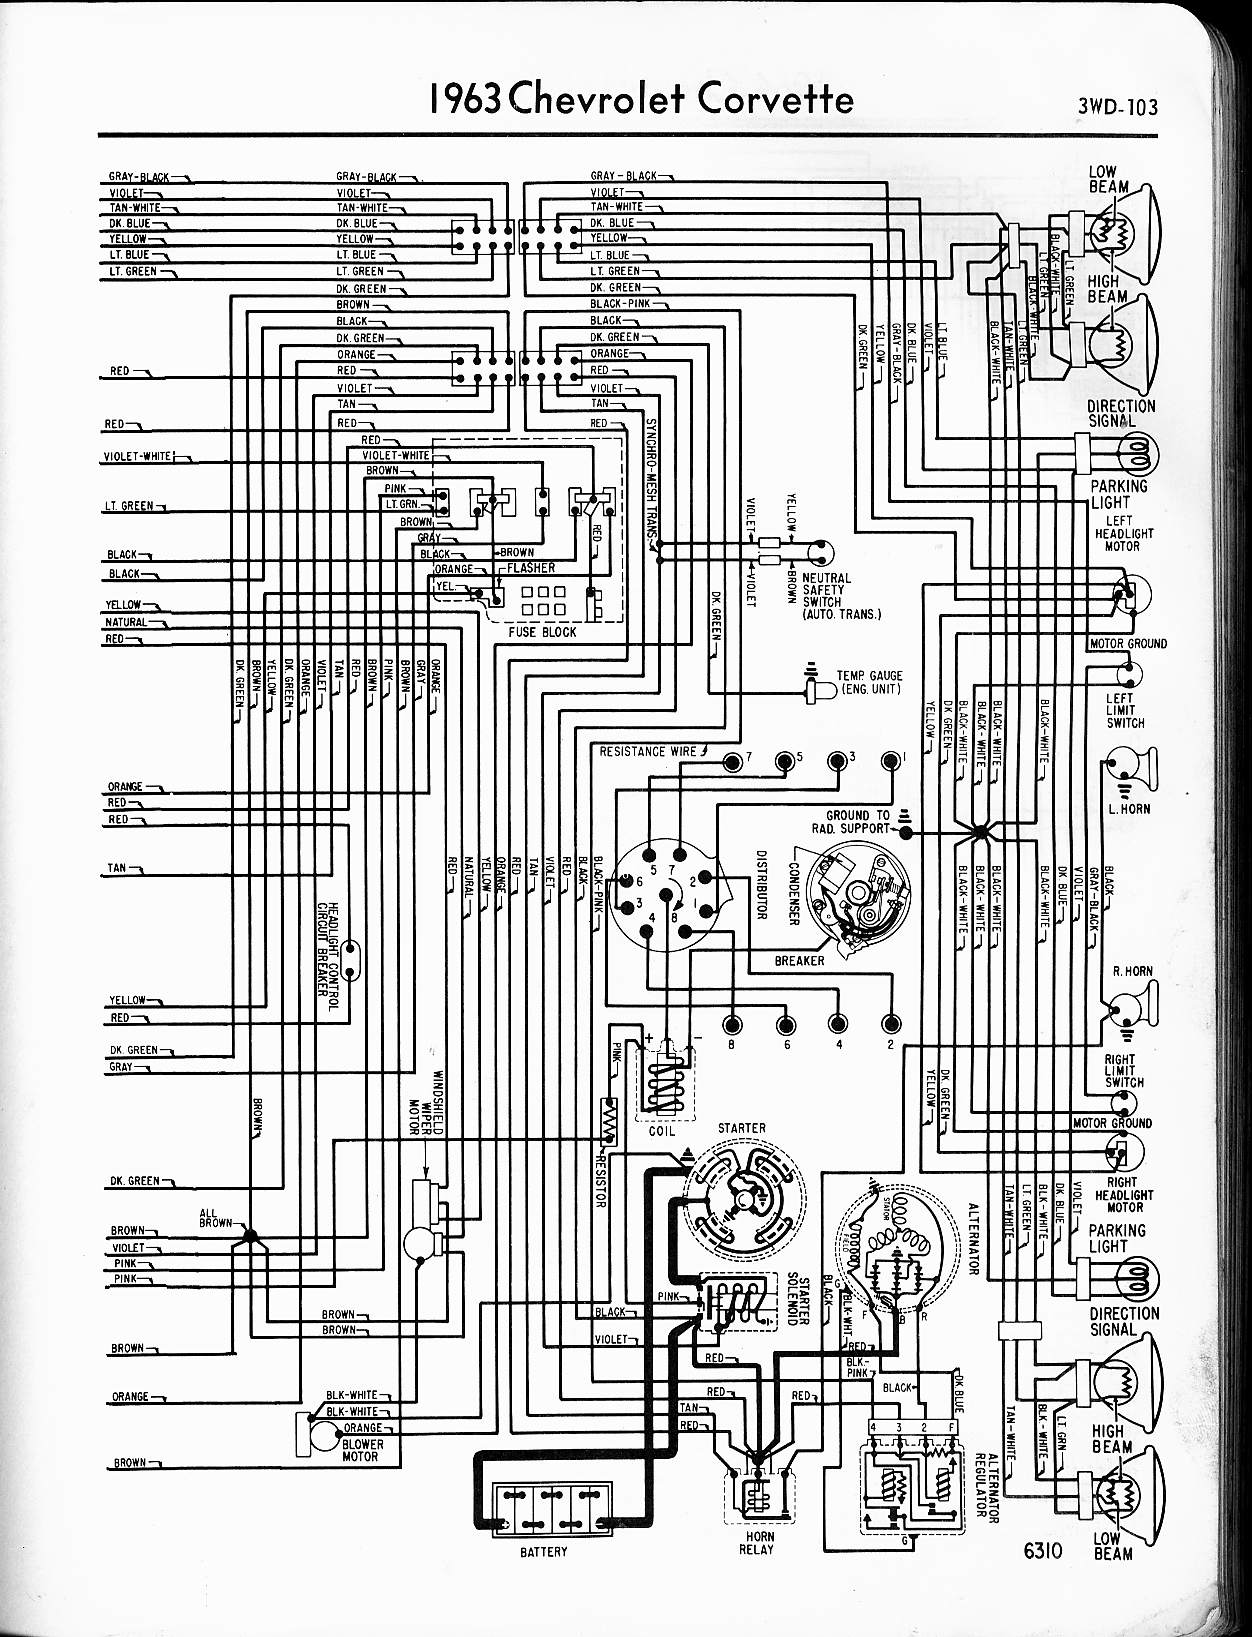 MWireChev63_3WD 103 57 65 chevy wiring diagrams 1970 Corvette Wiring Diagram at n-0.co